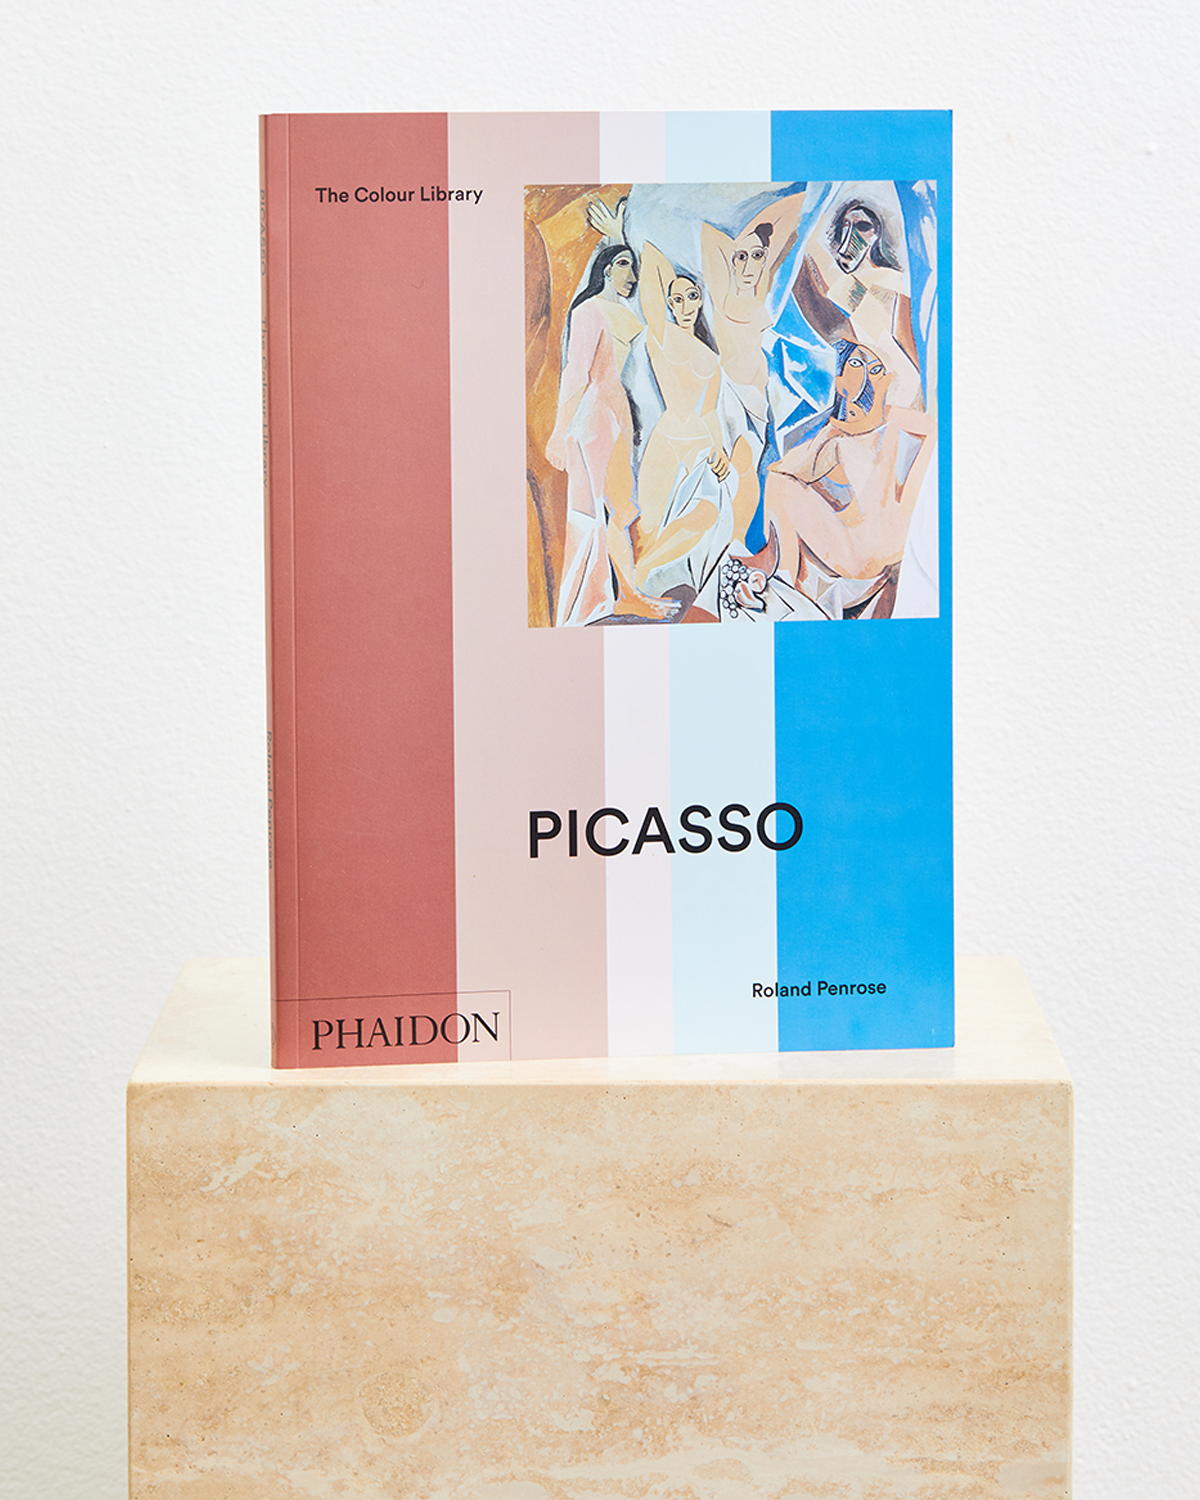 Picasso by Roland Penrose